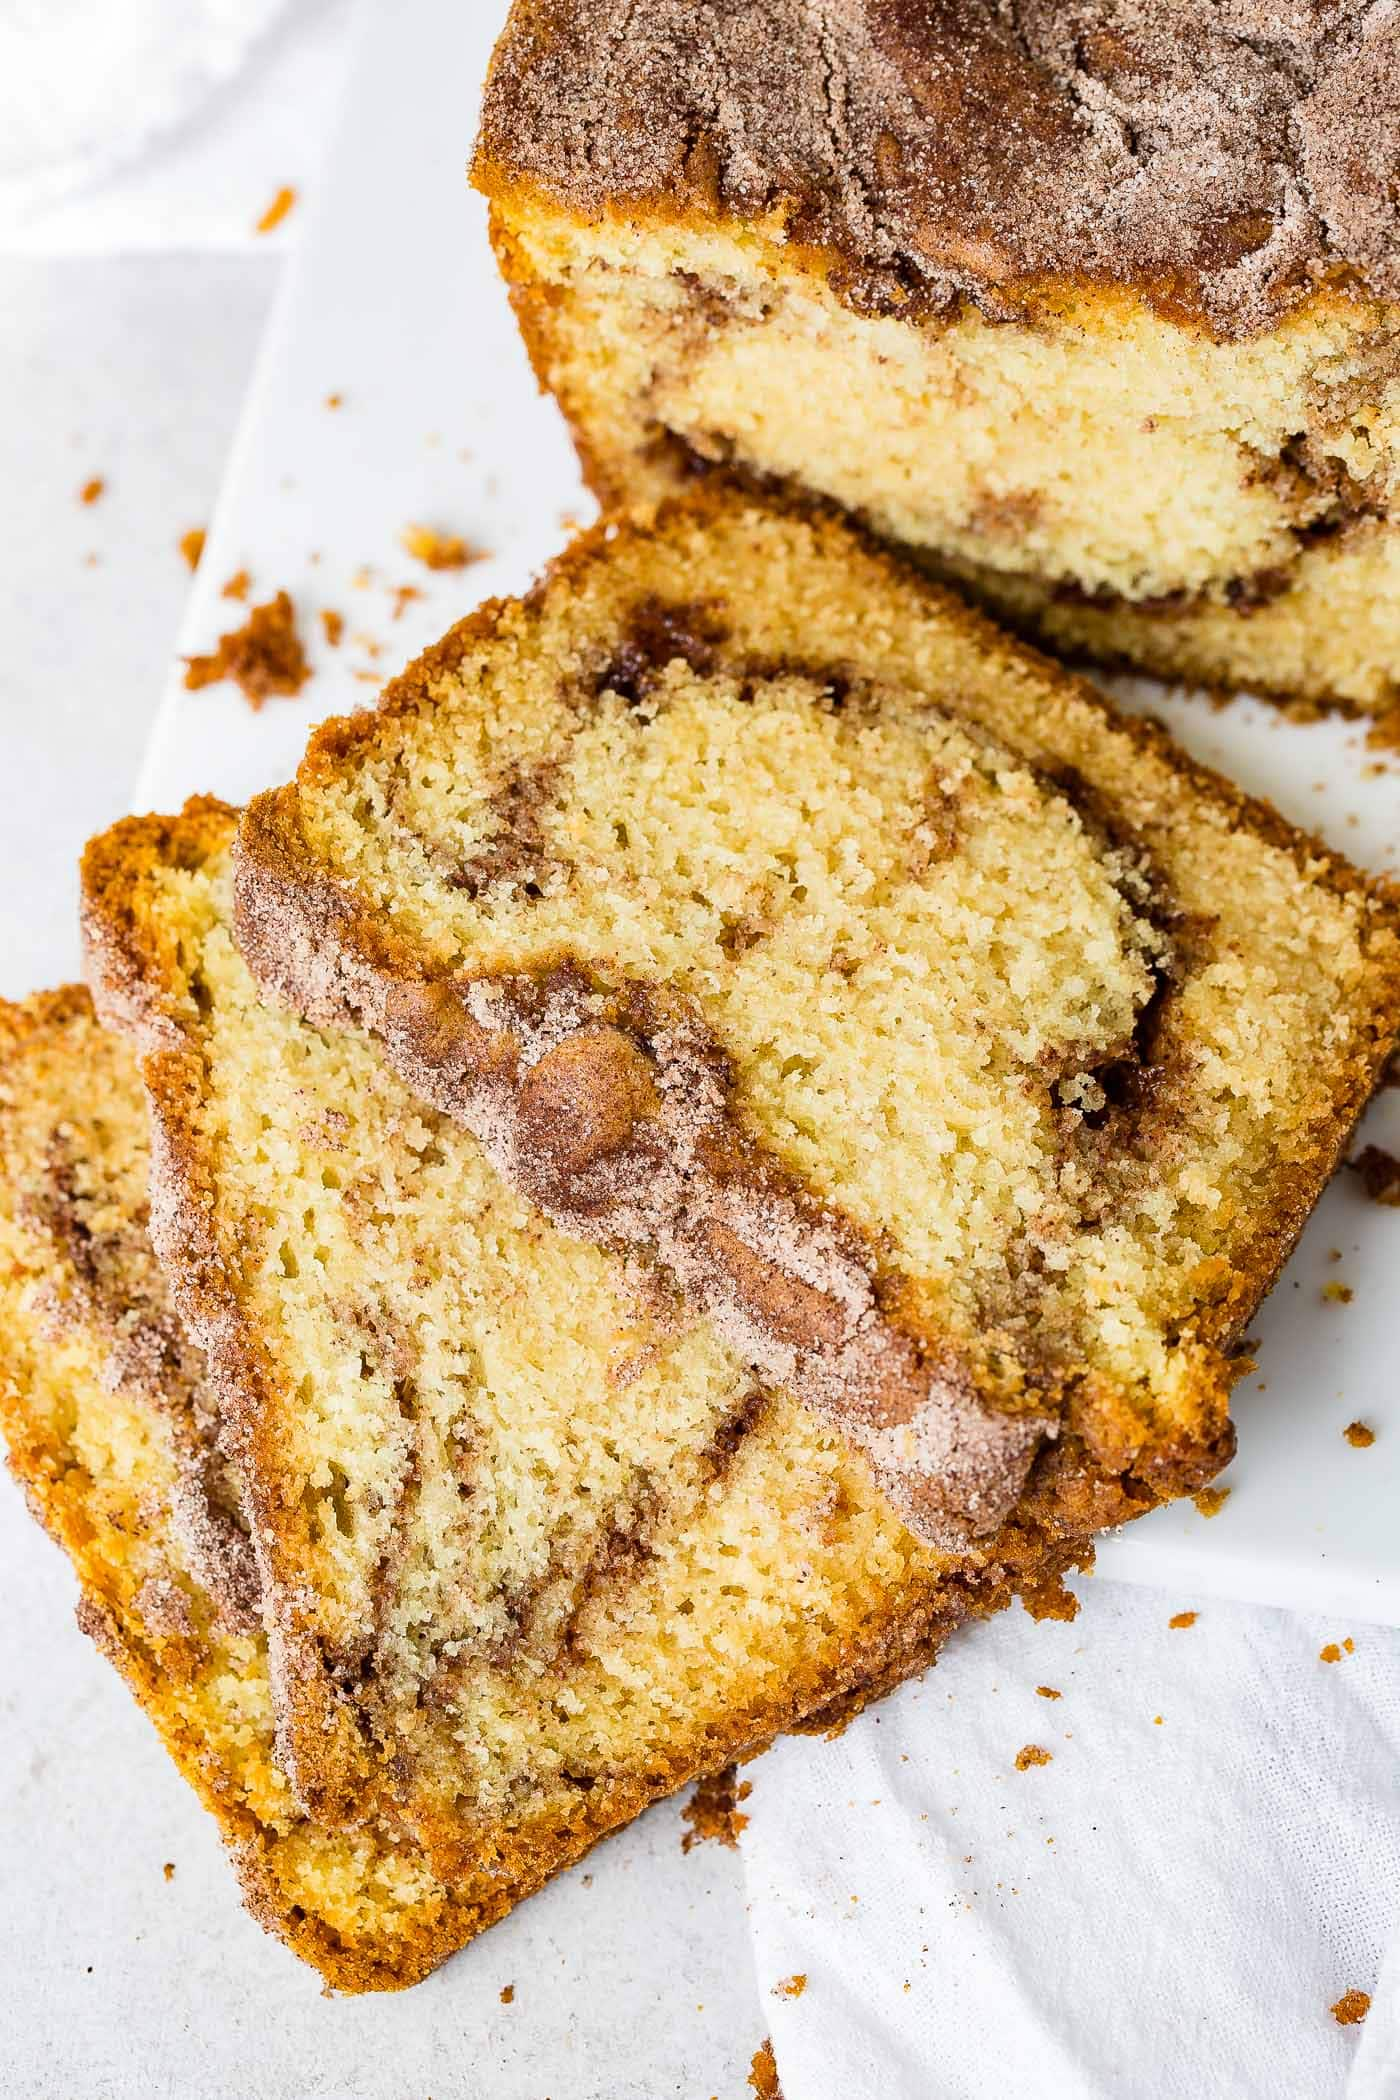 Three slices of snickerdoodle bread laying on a plate with the rest of the loaf of bread in the background.